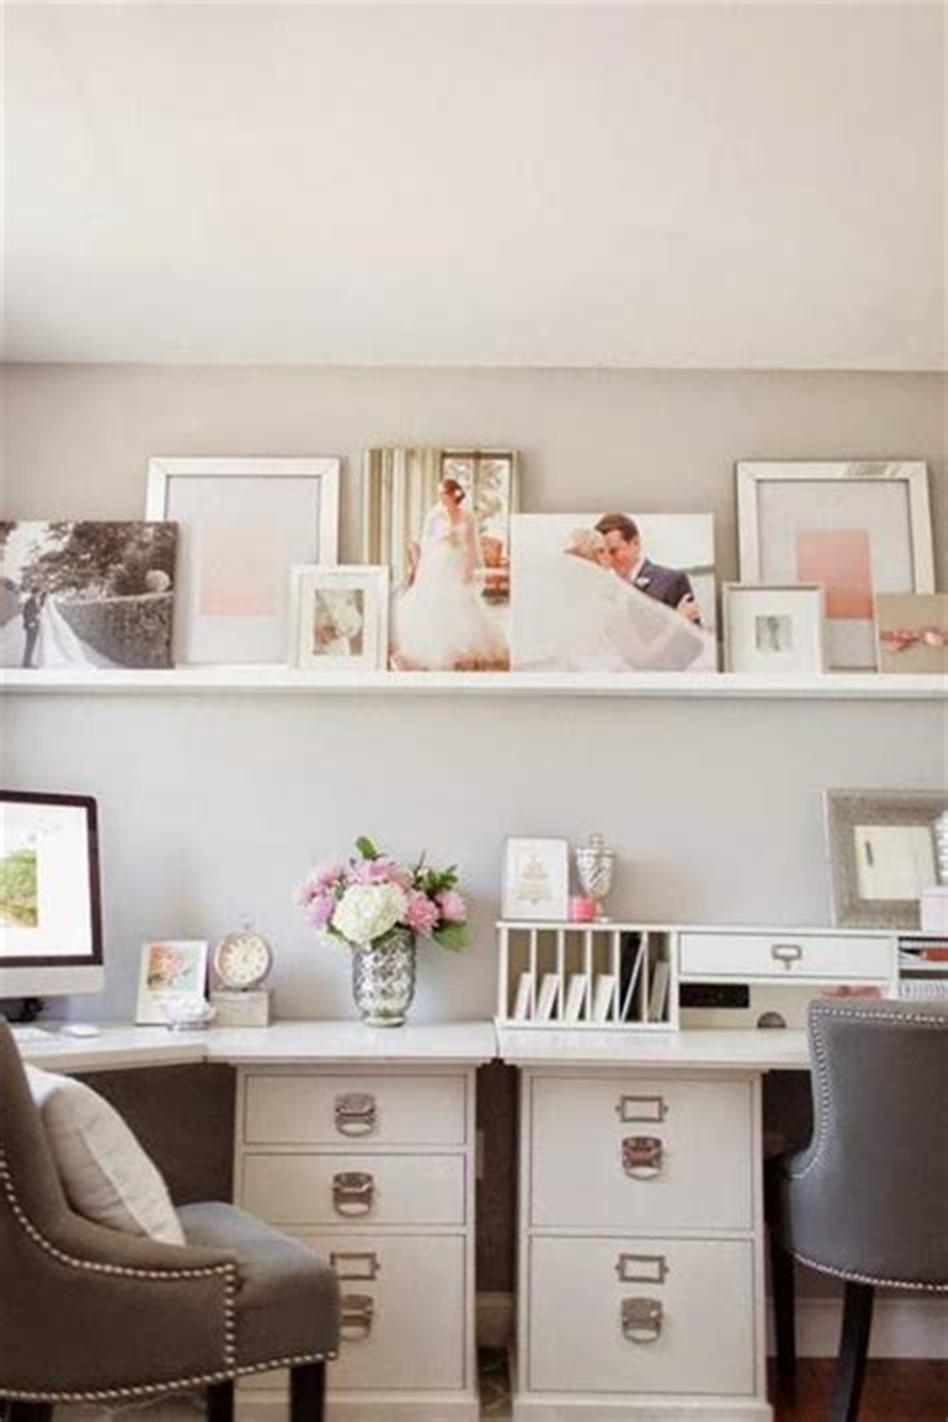 50 Best Small Space Office Decorating Ideas On a Budget 2019 43